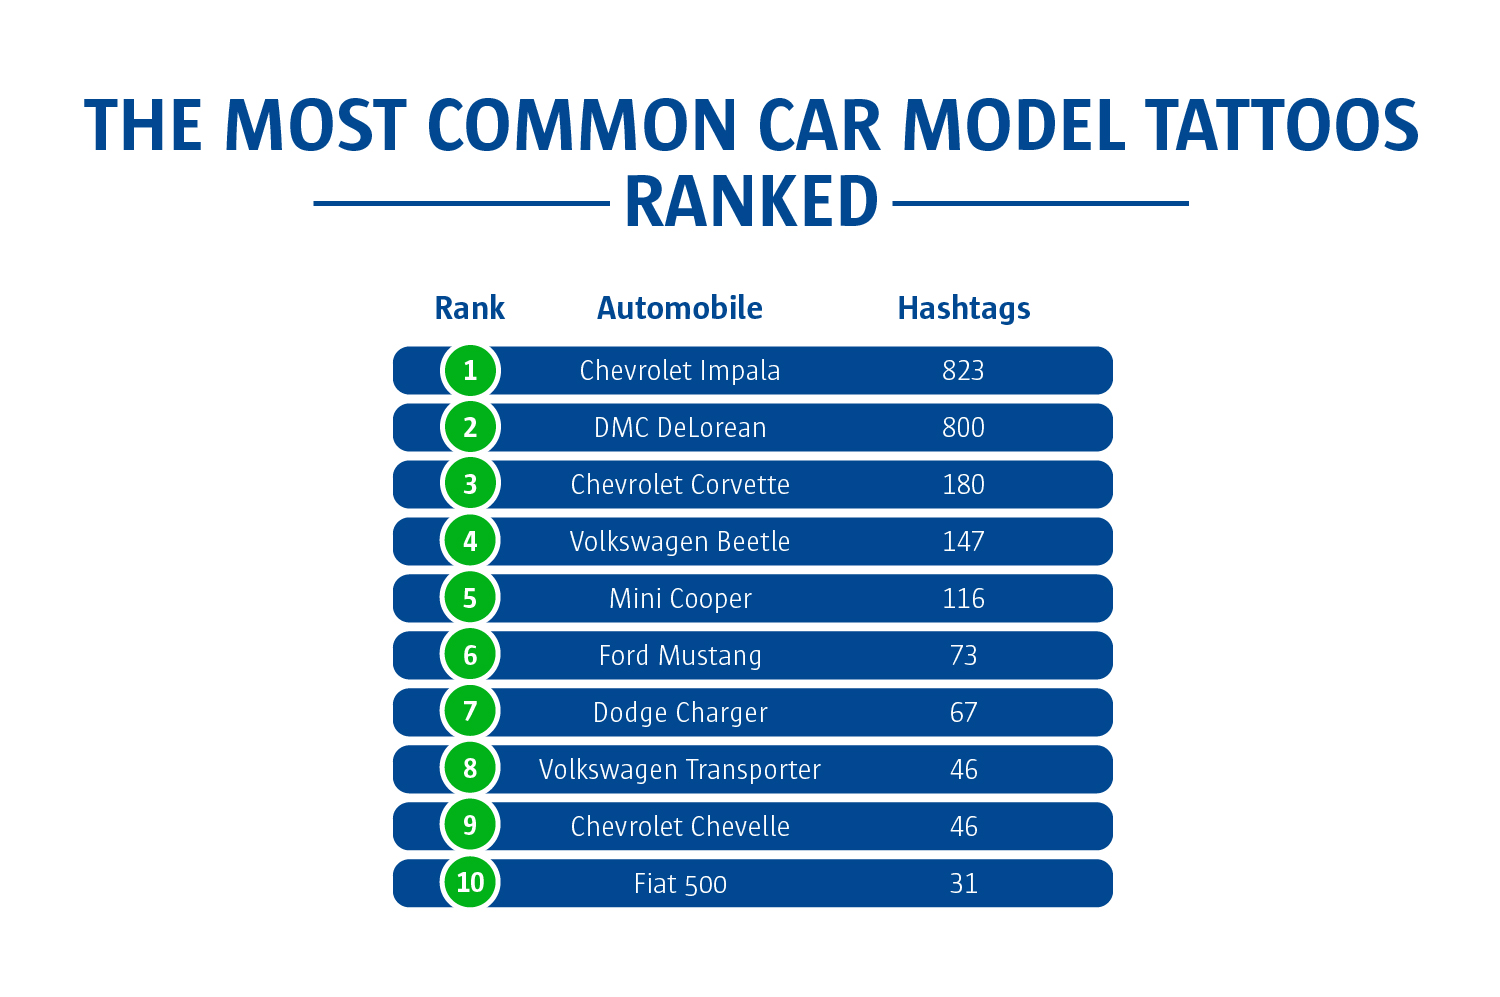 The most common car model tattoos ranked